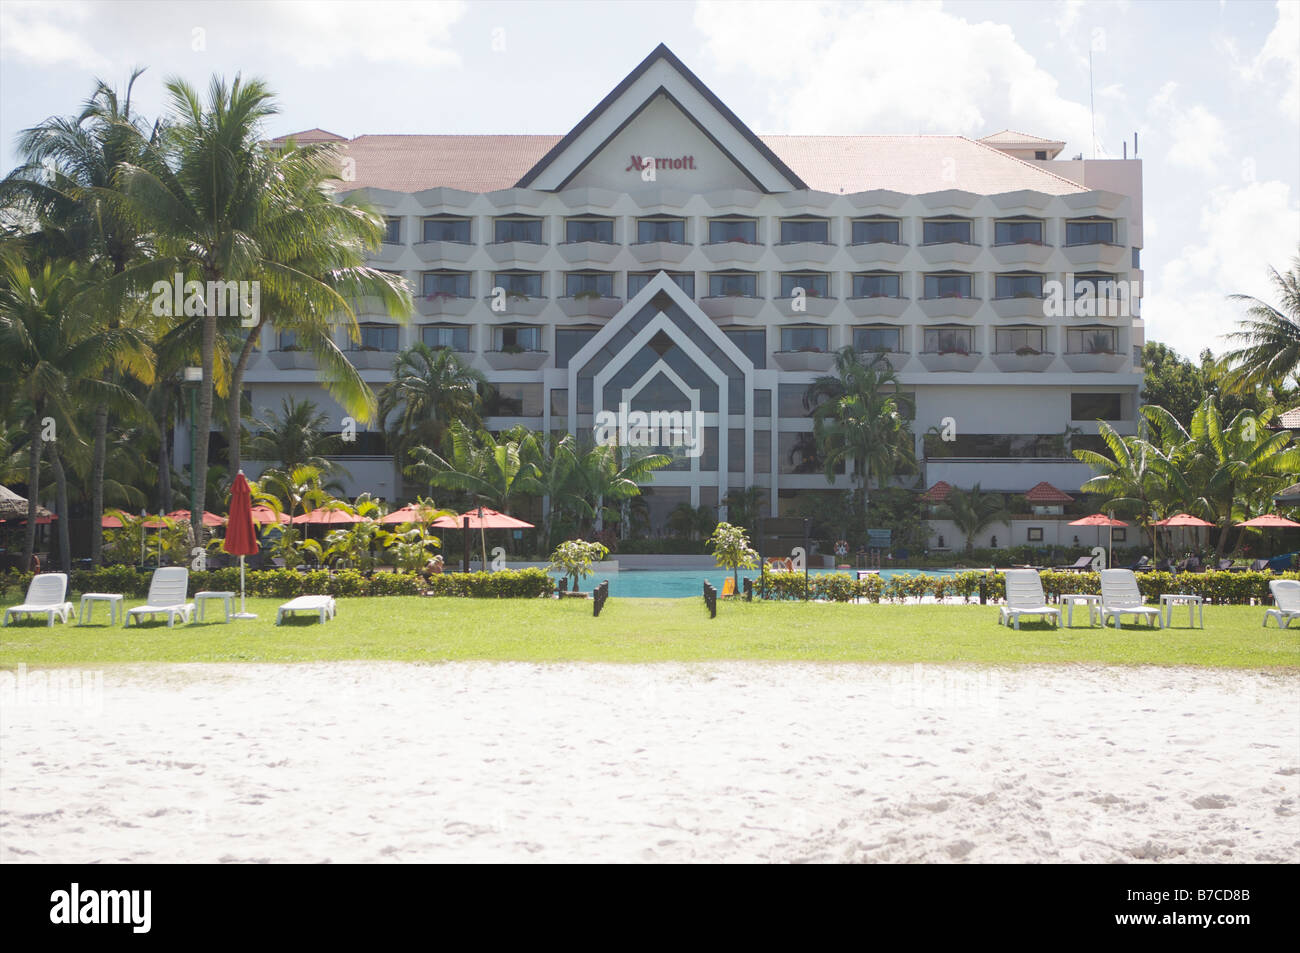 Marriot hotel in the small town of Miri Malaysia - Stock Image